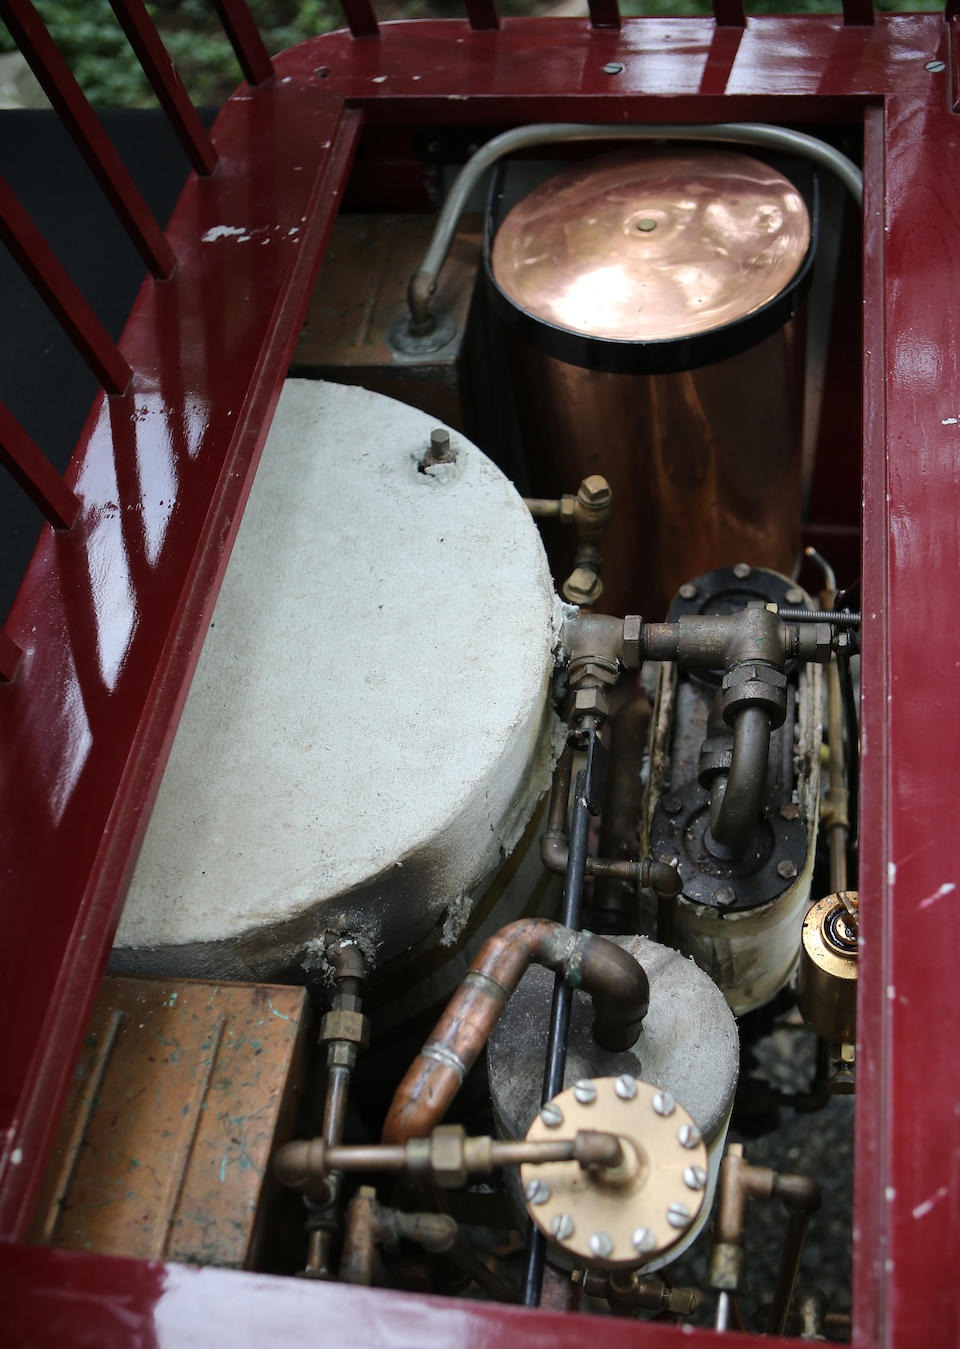 <b>1900 Mobile MODEL 4 5.5HP STEAM RUNABOUT</b><br />Chassis no. 3137